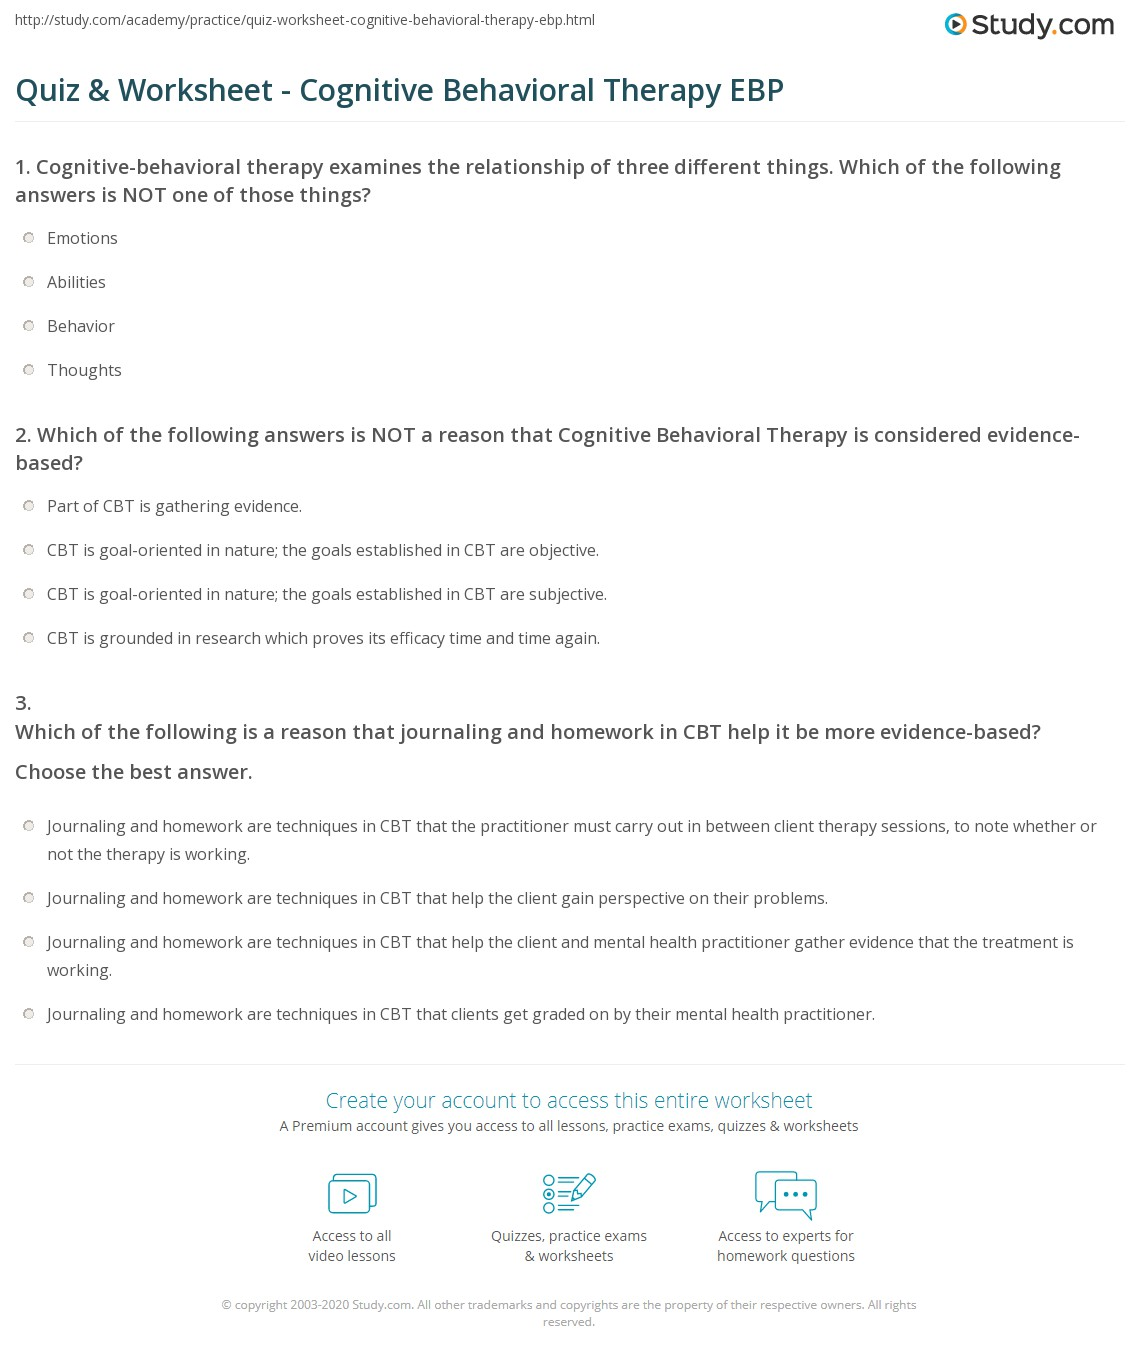 Quiz & Worksheet Cognitive Behavioral Therapy EBP